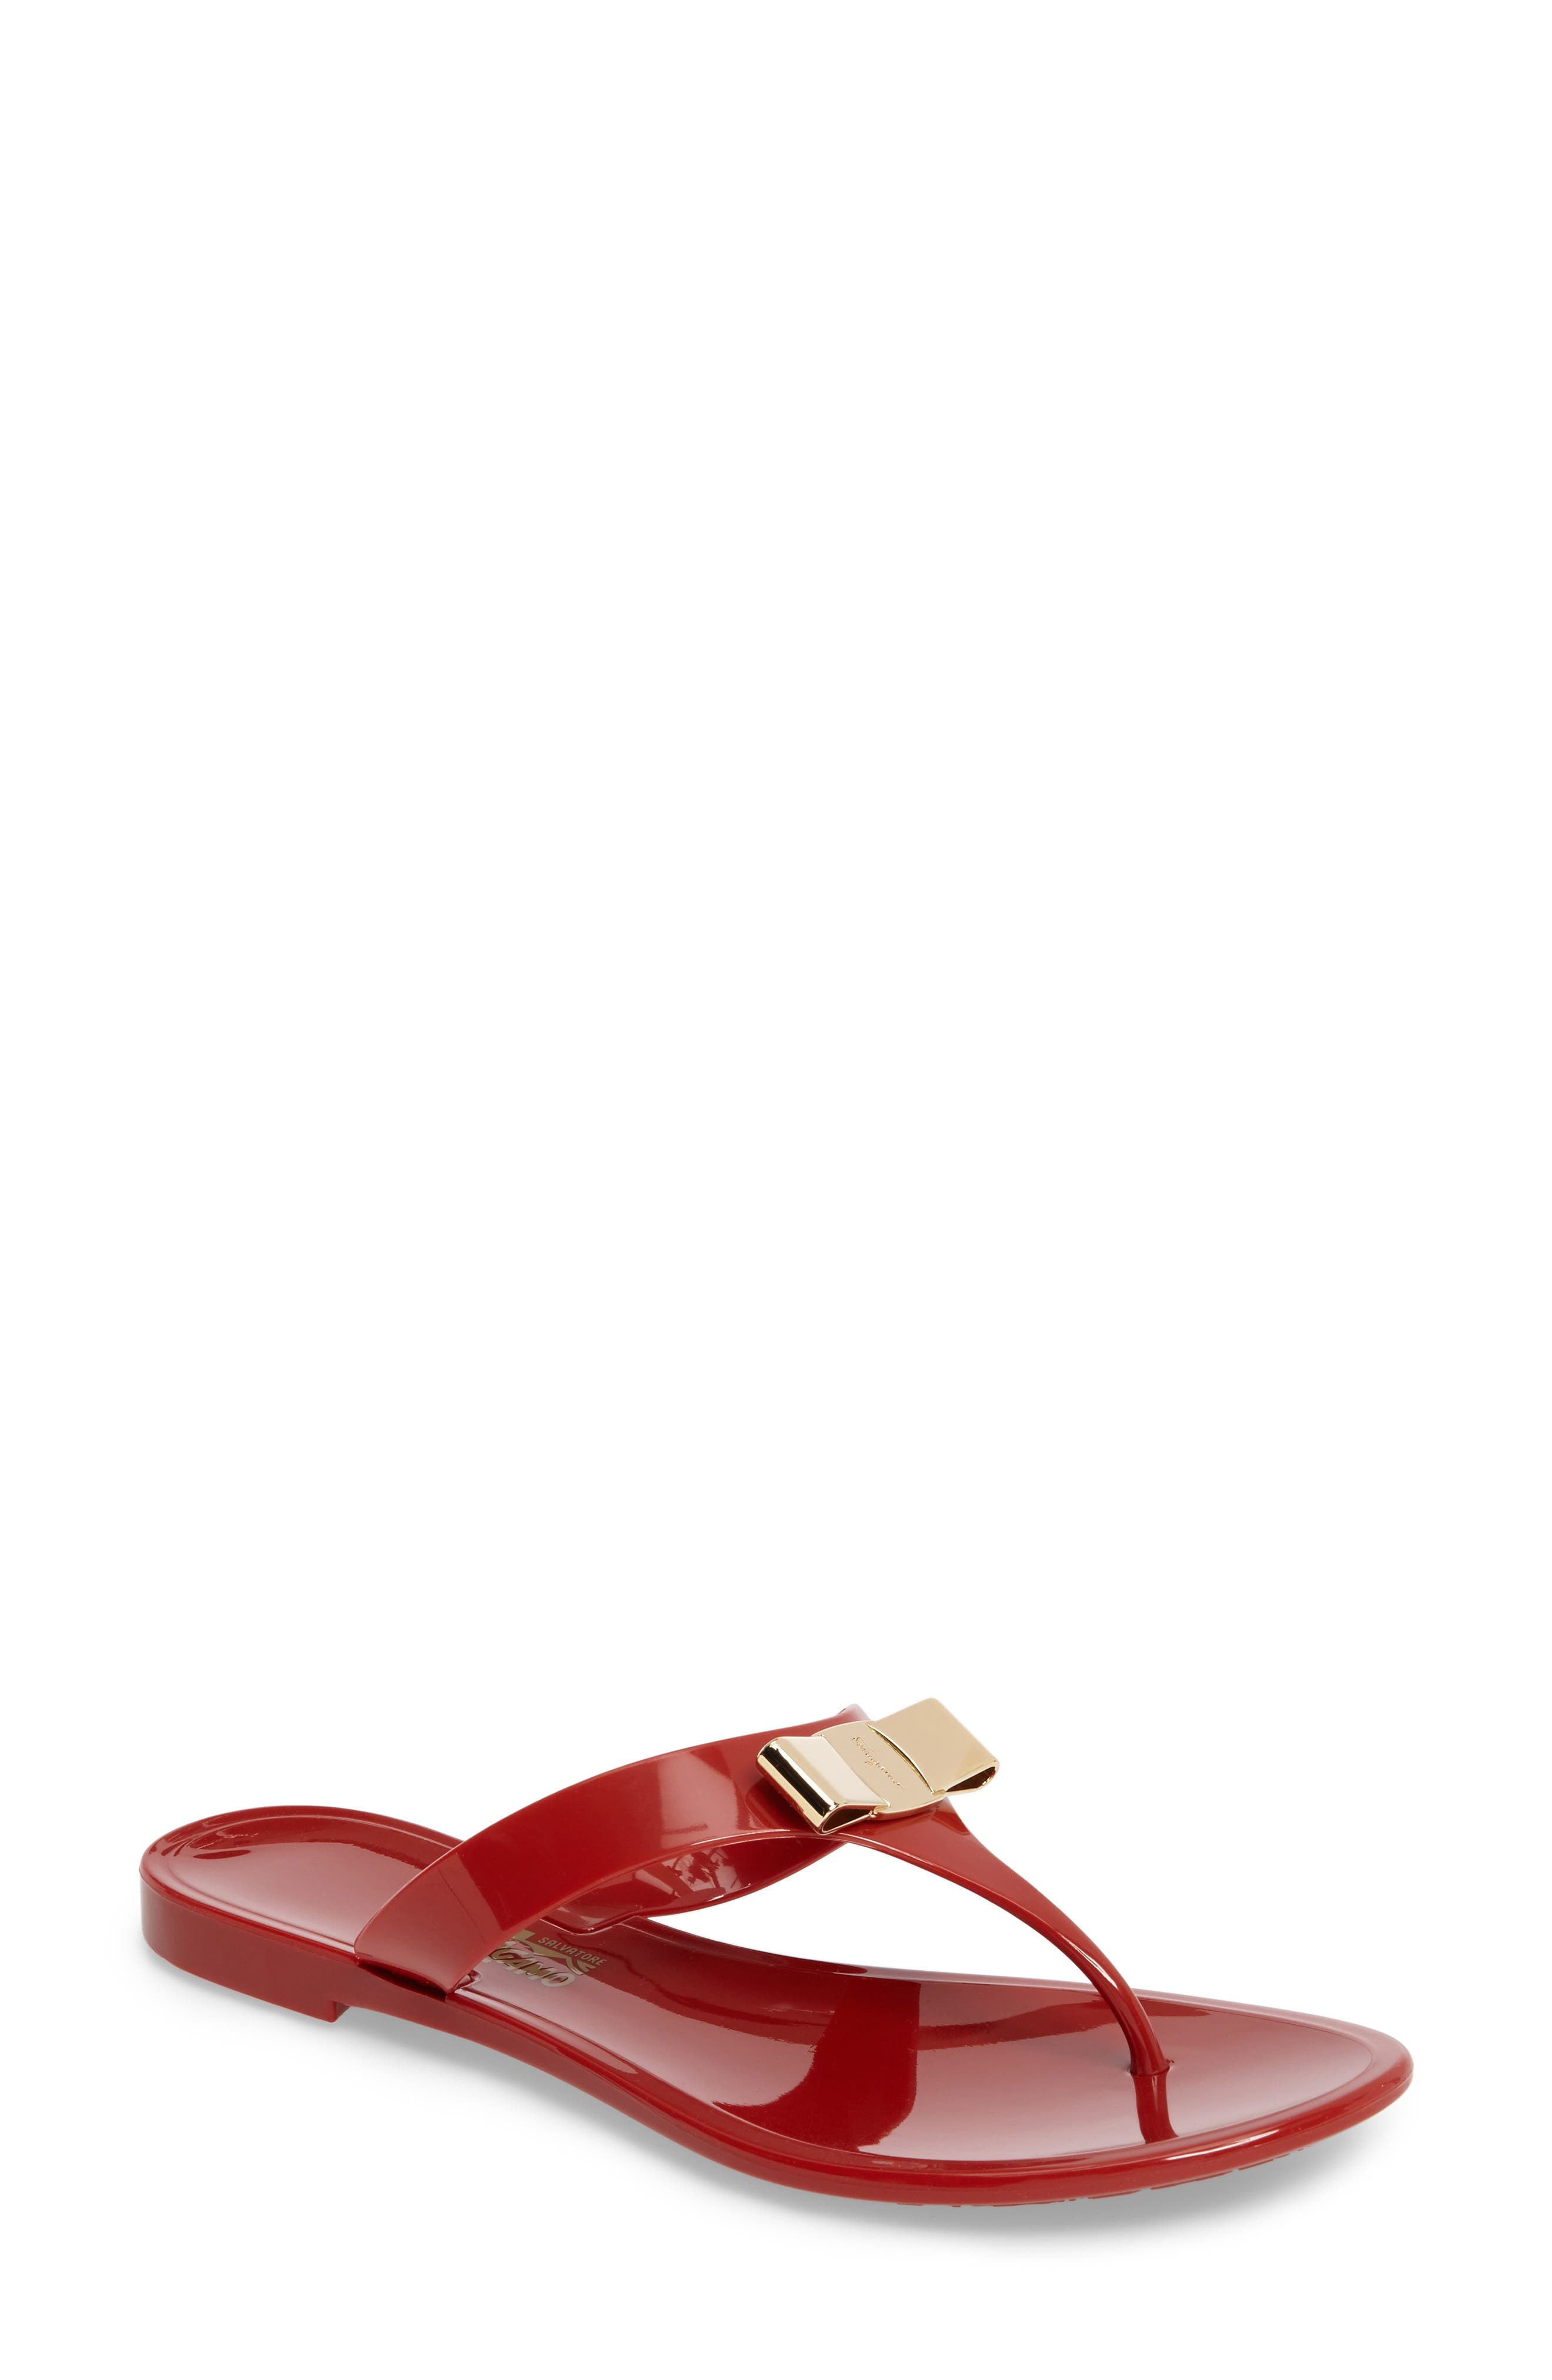 Salvatore Ferragamo Jelly Flat Bow Sandal (Women)